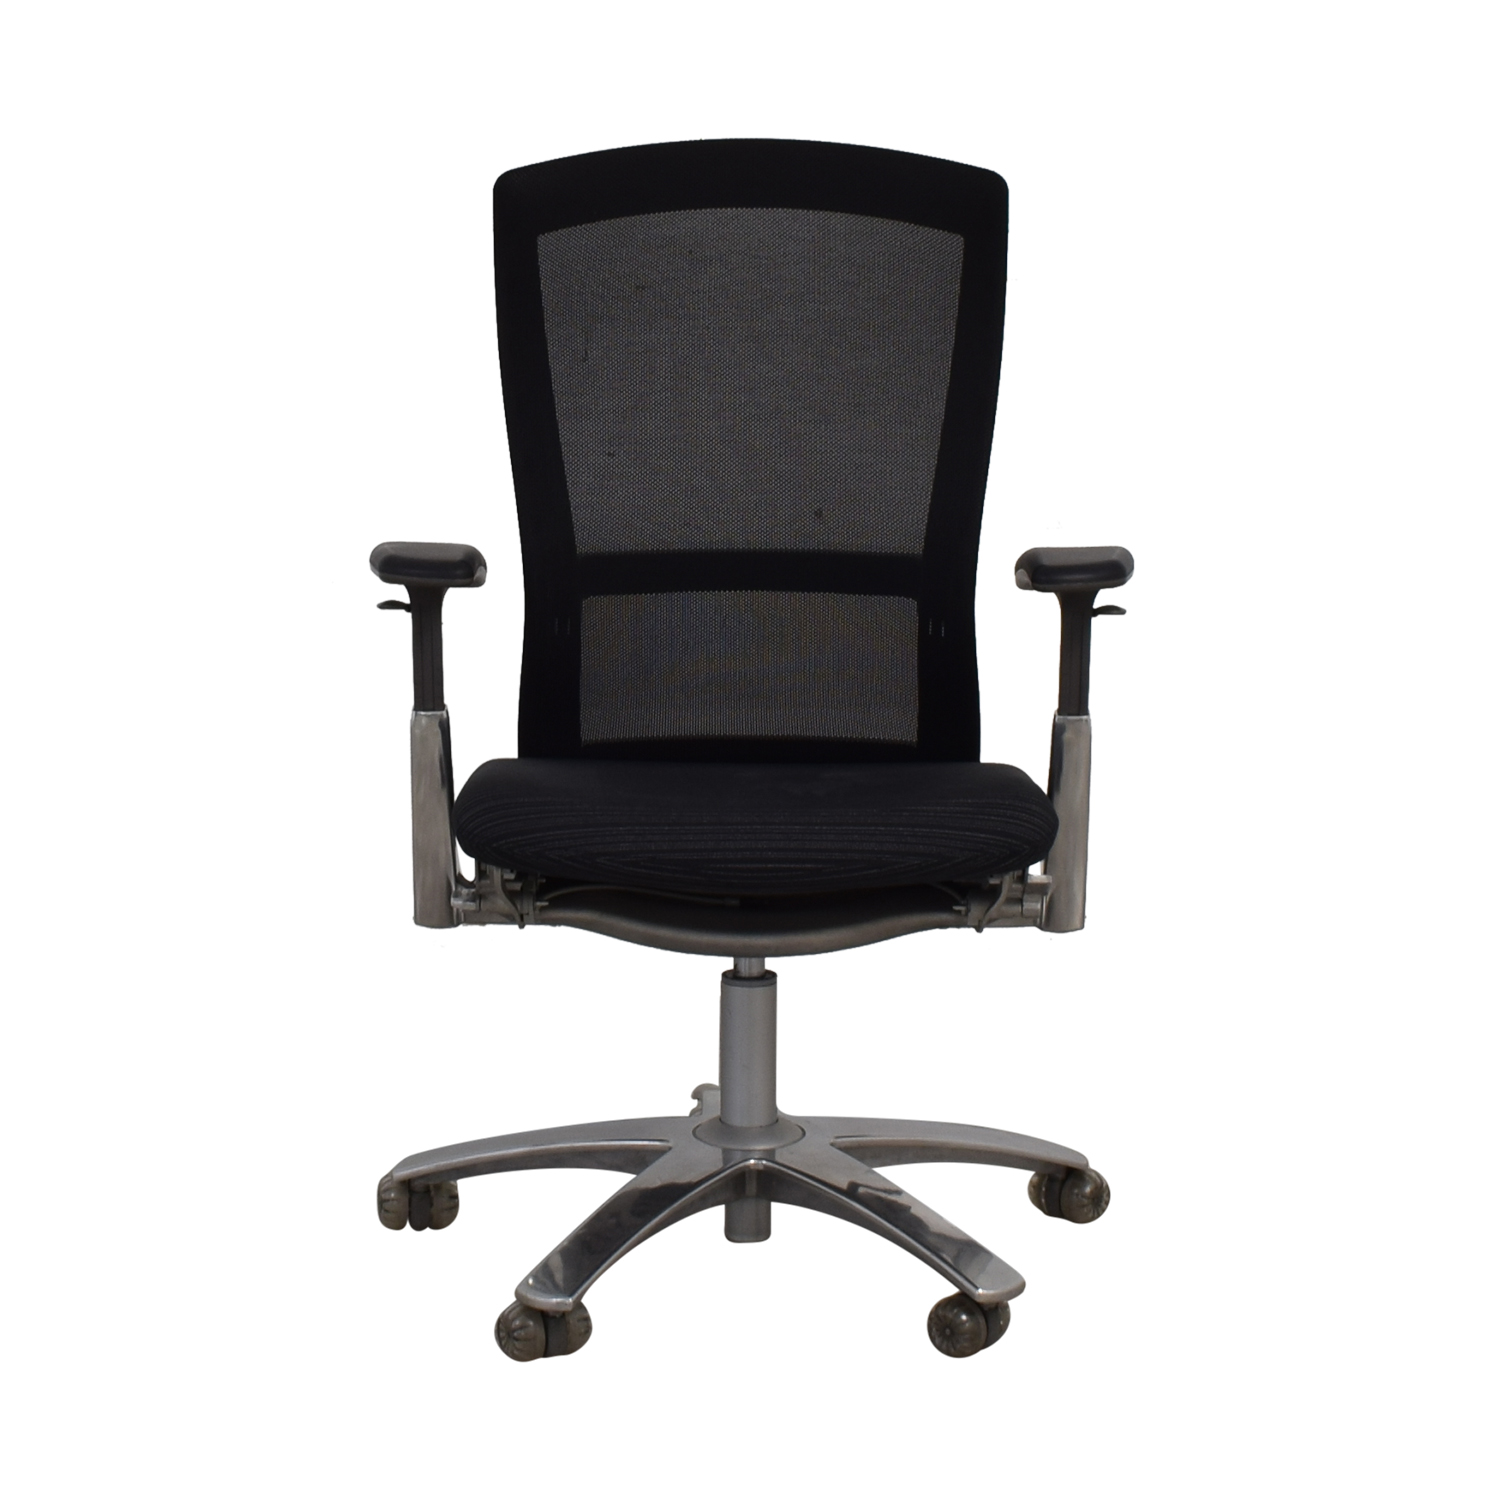 buy Knoll Life Black Striped Desk Chair Knoll Home Office Chairs